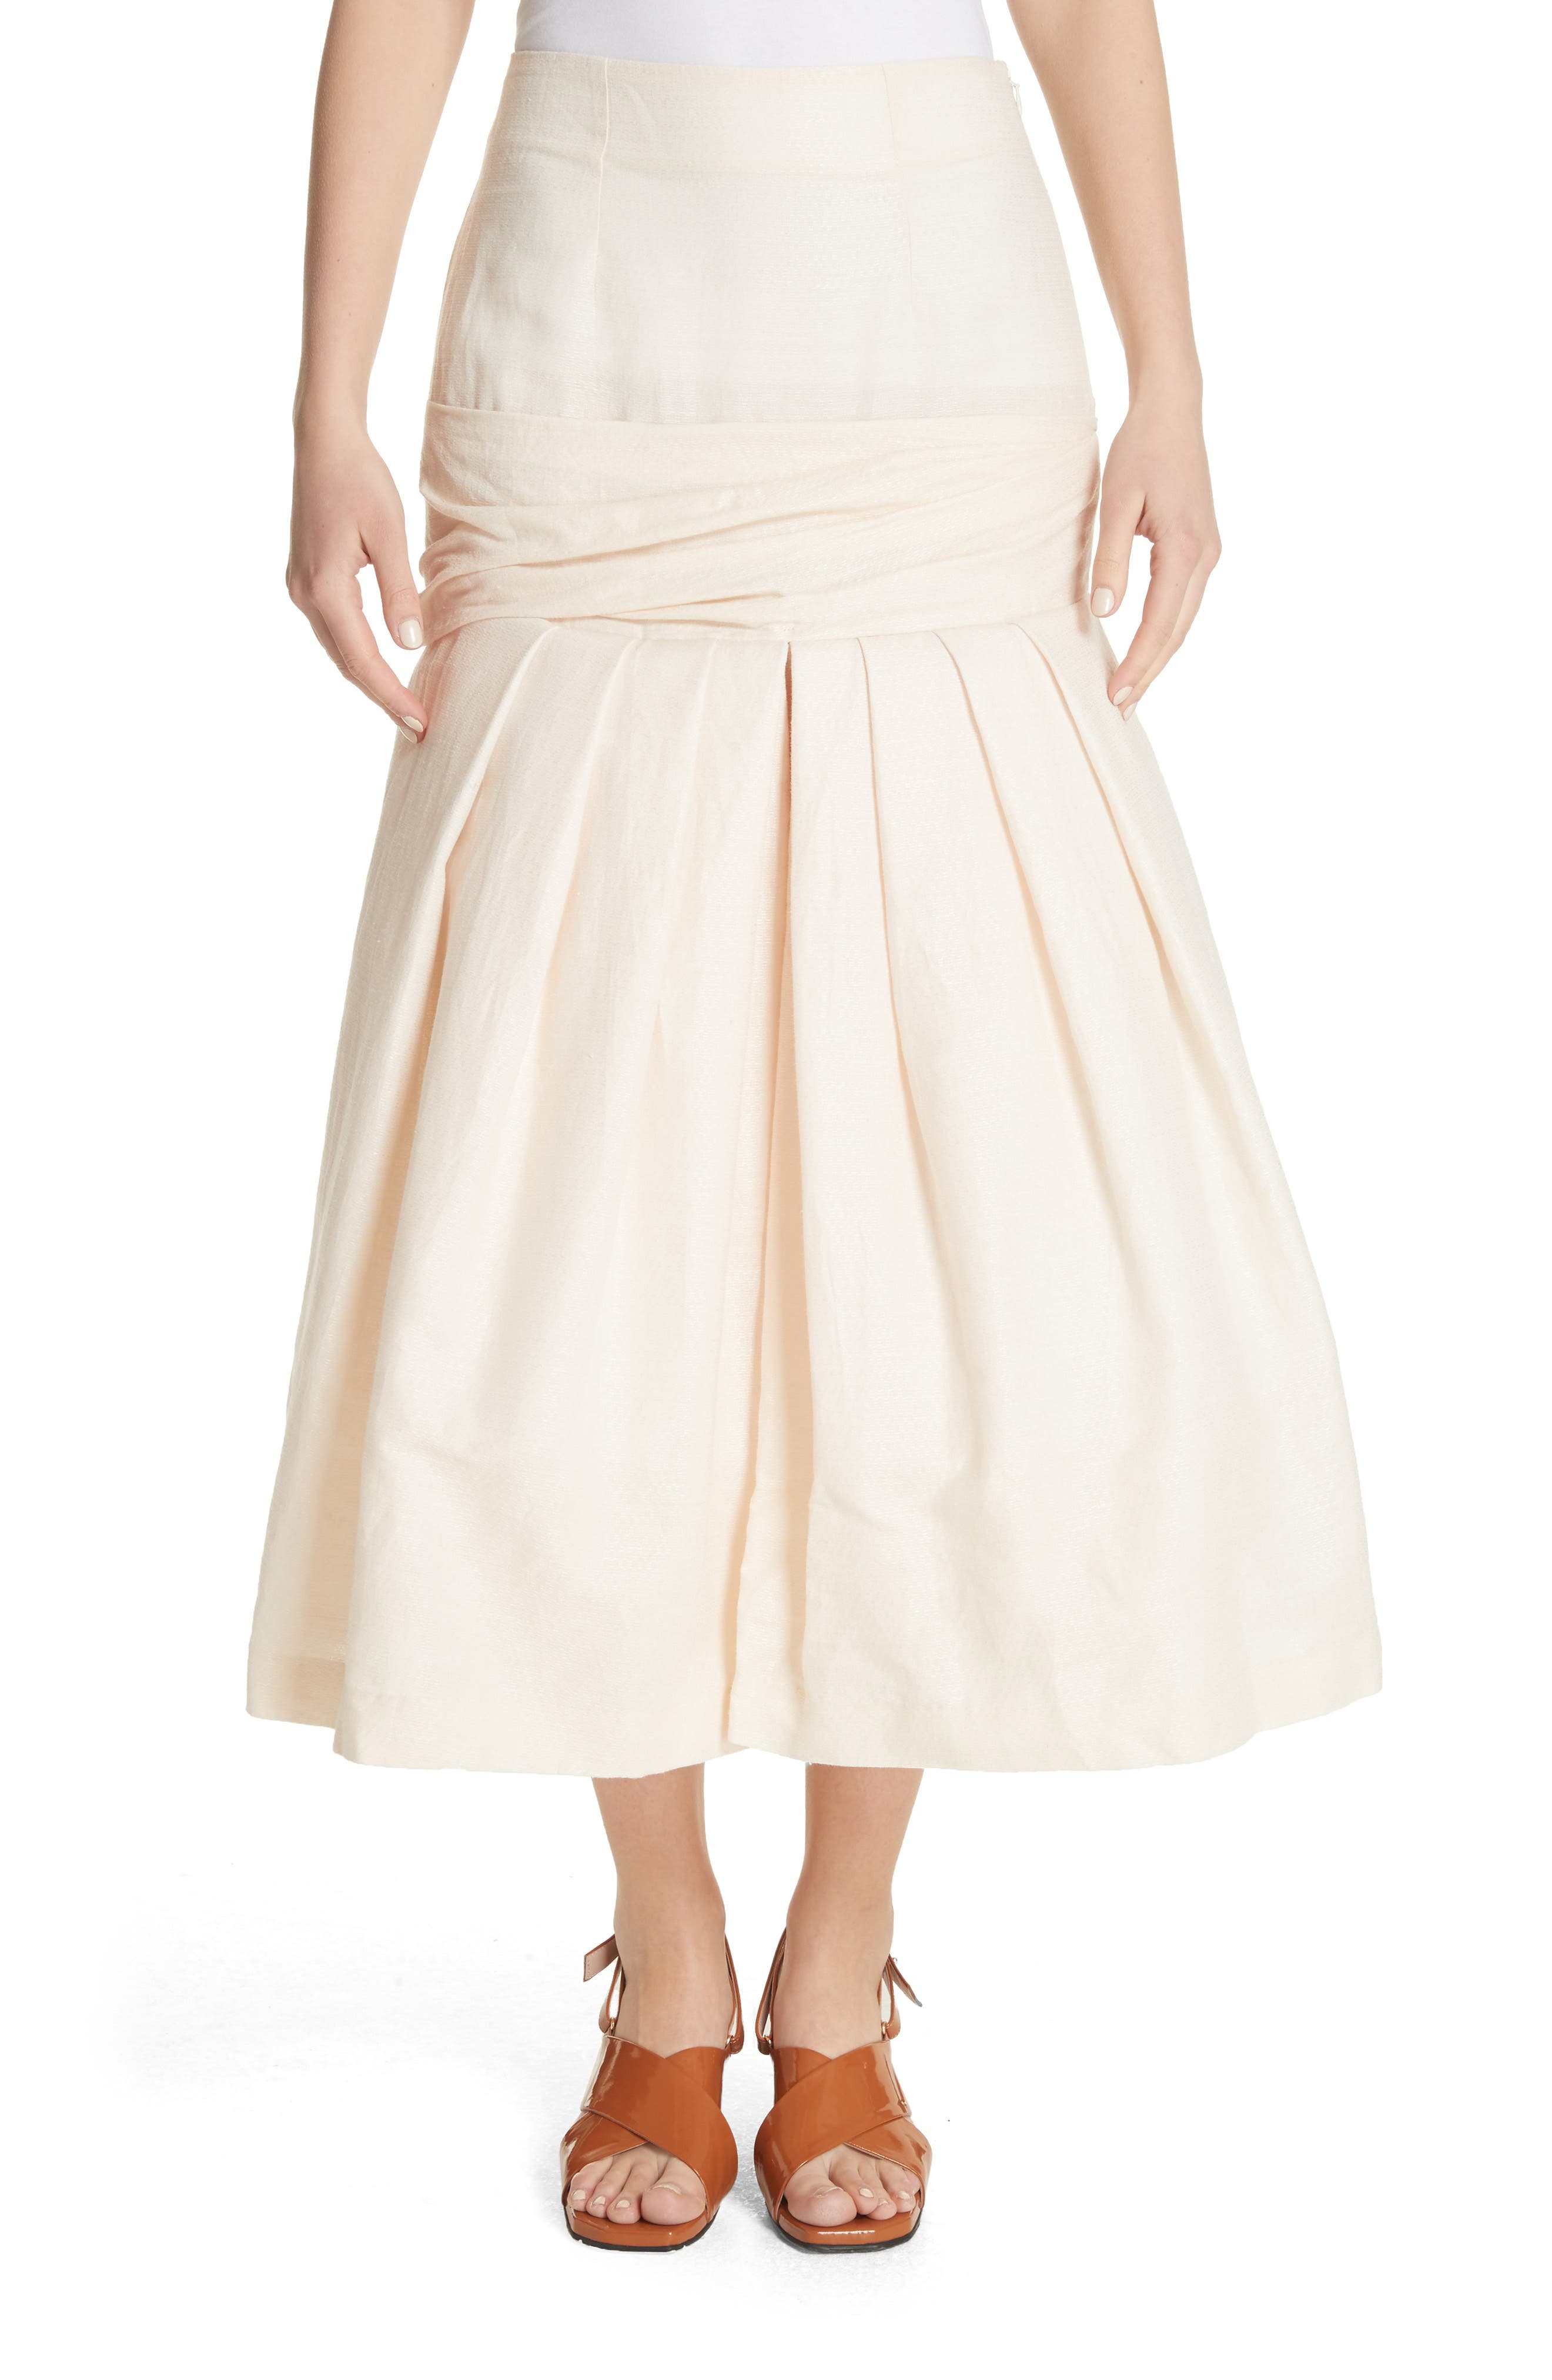 La Jupe Mamao Skirt,                             Main thumbnail 1, color,                             250